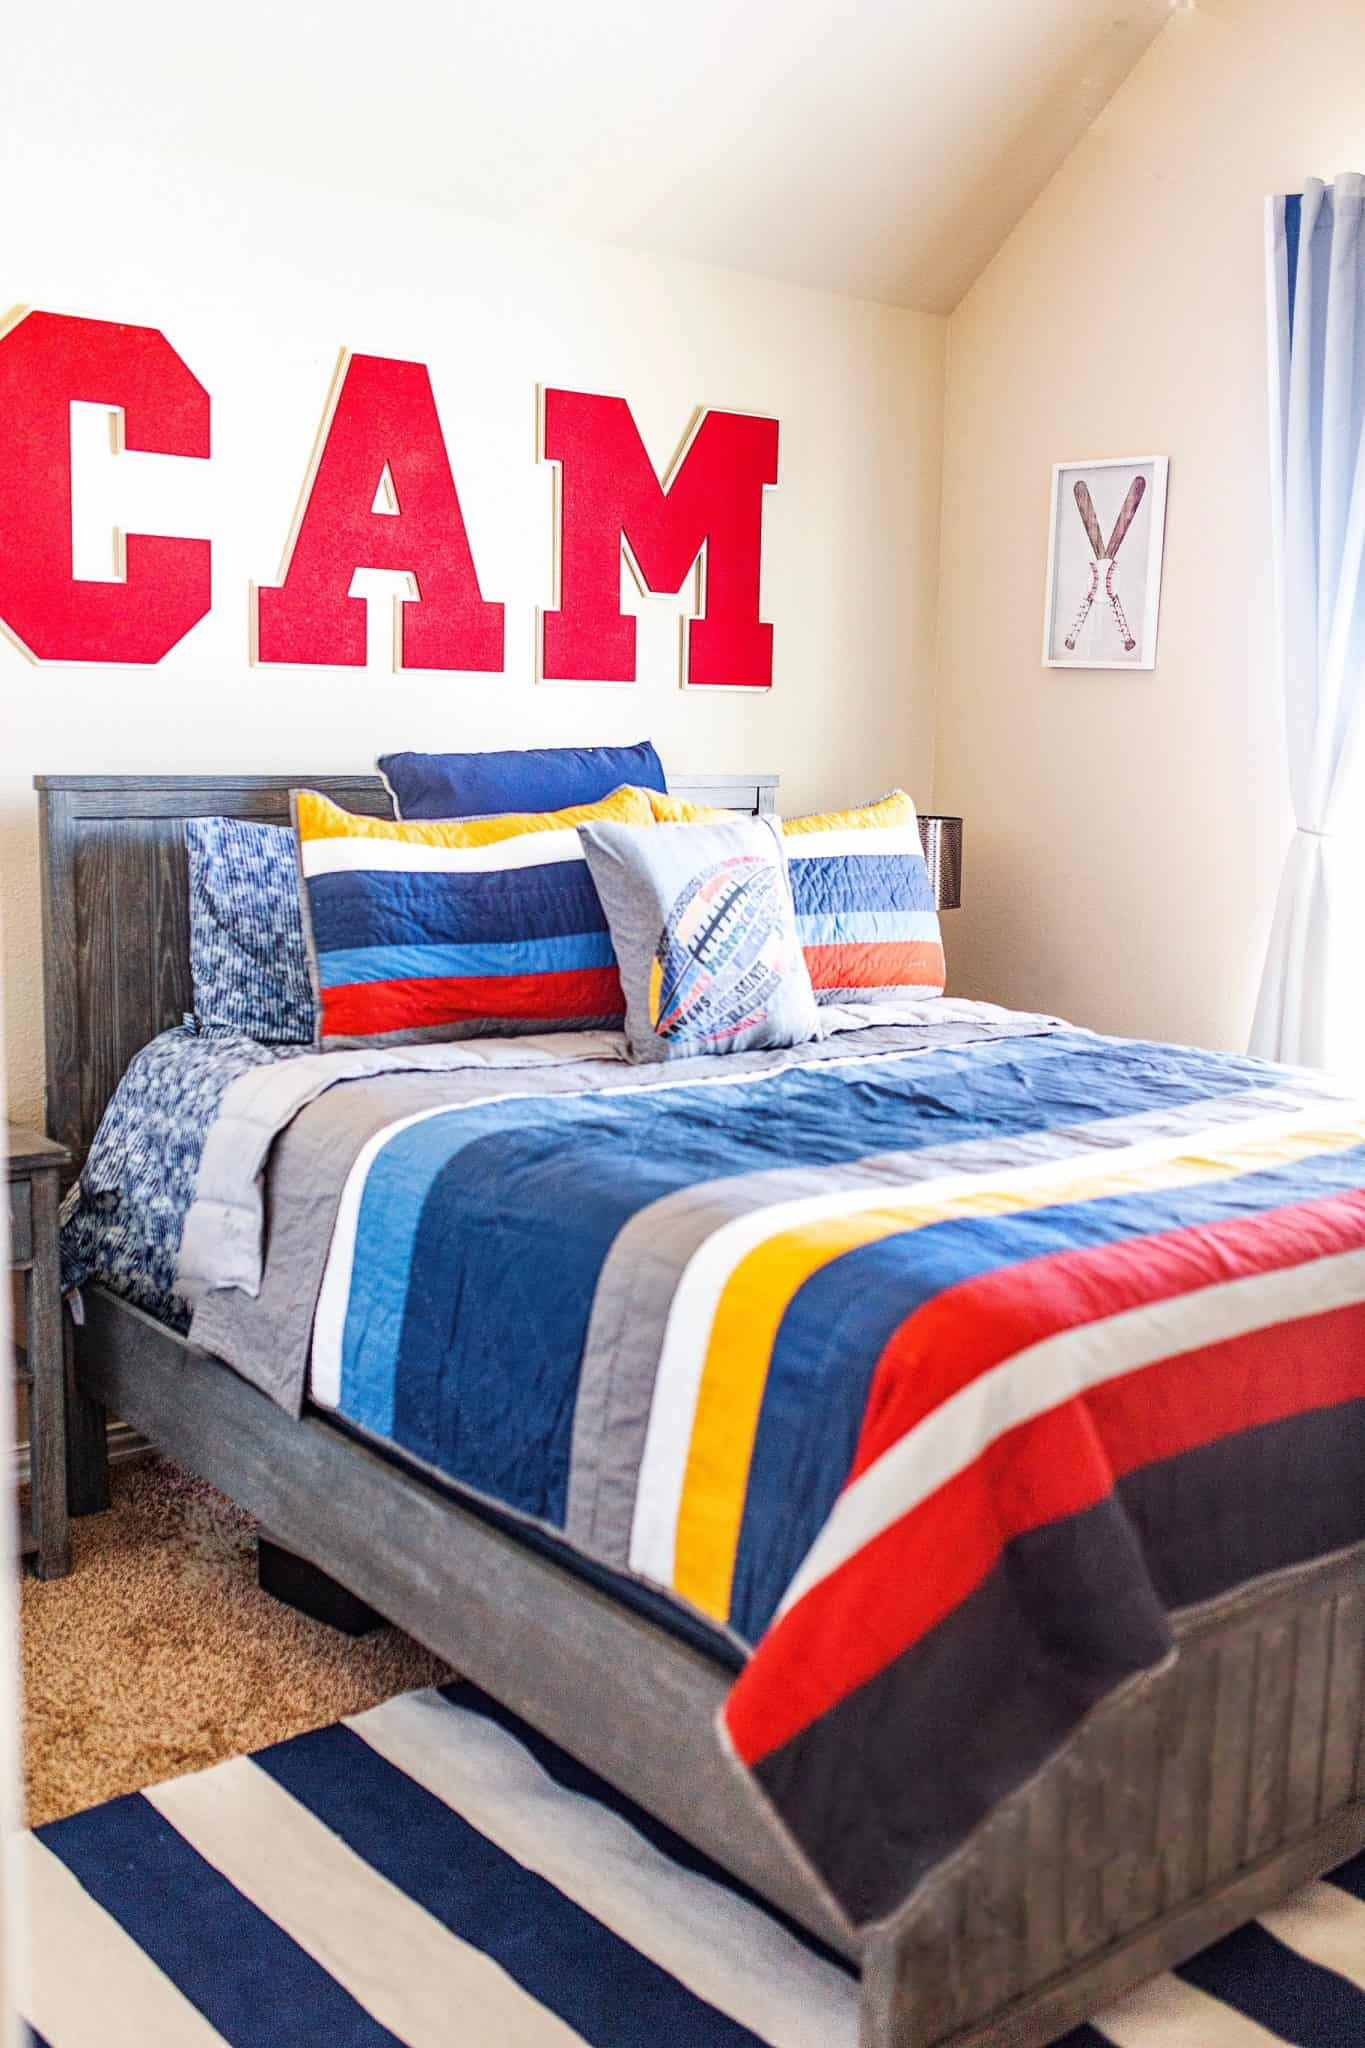 The Ultimate Teen Bedroom Makeover with Pottery Barn featured by top US life and style blog, Glamorous Versatility